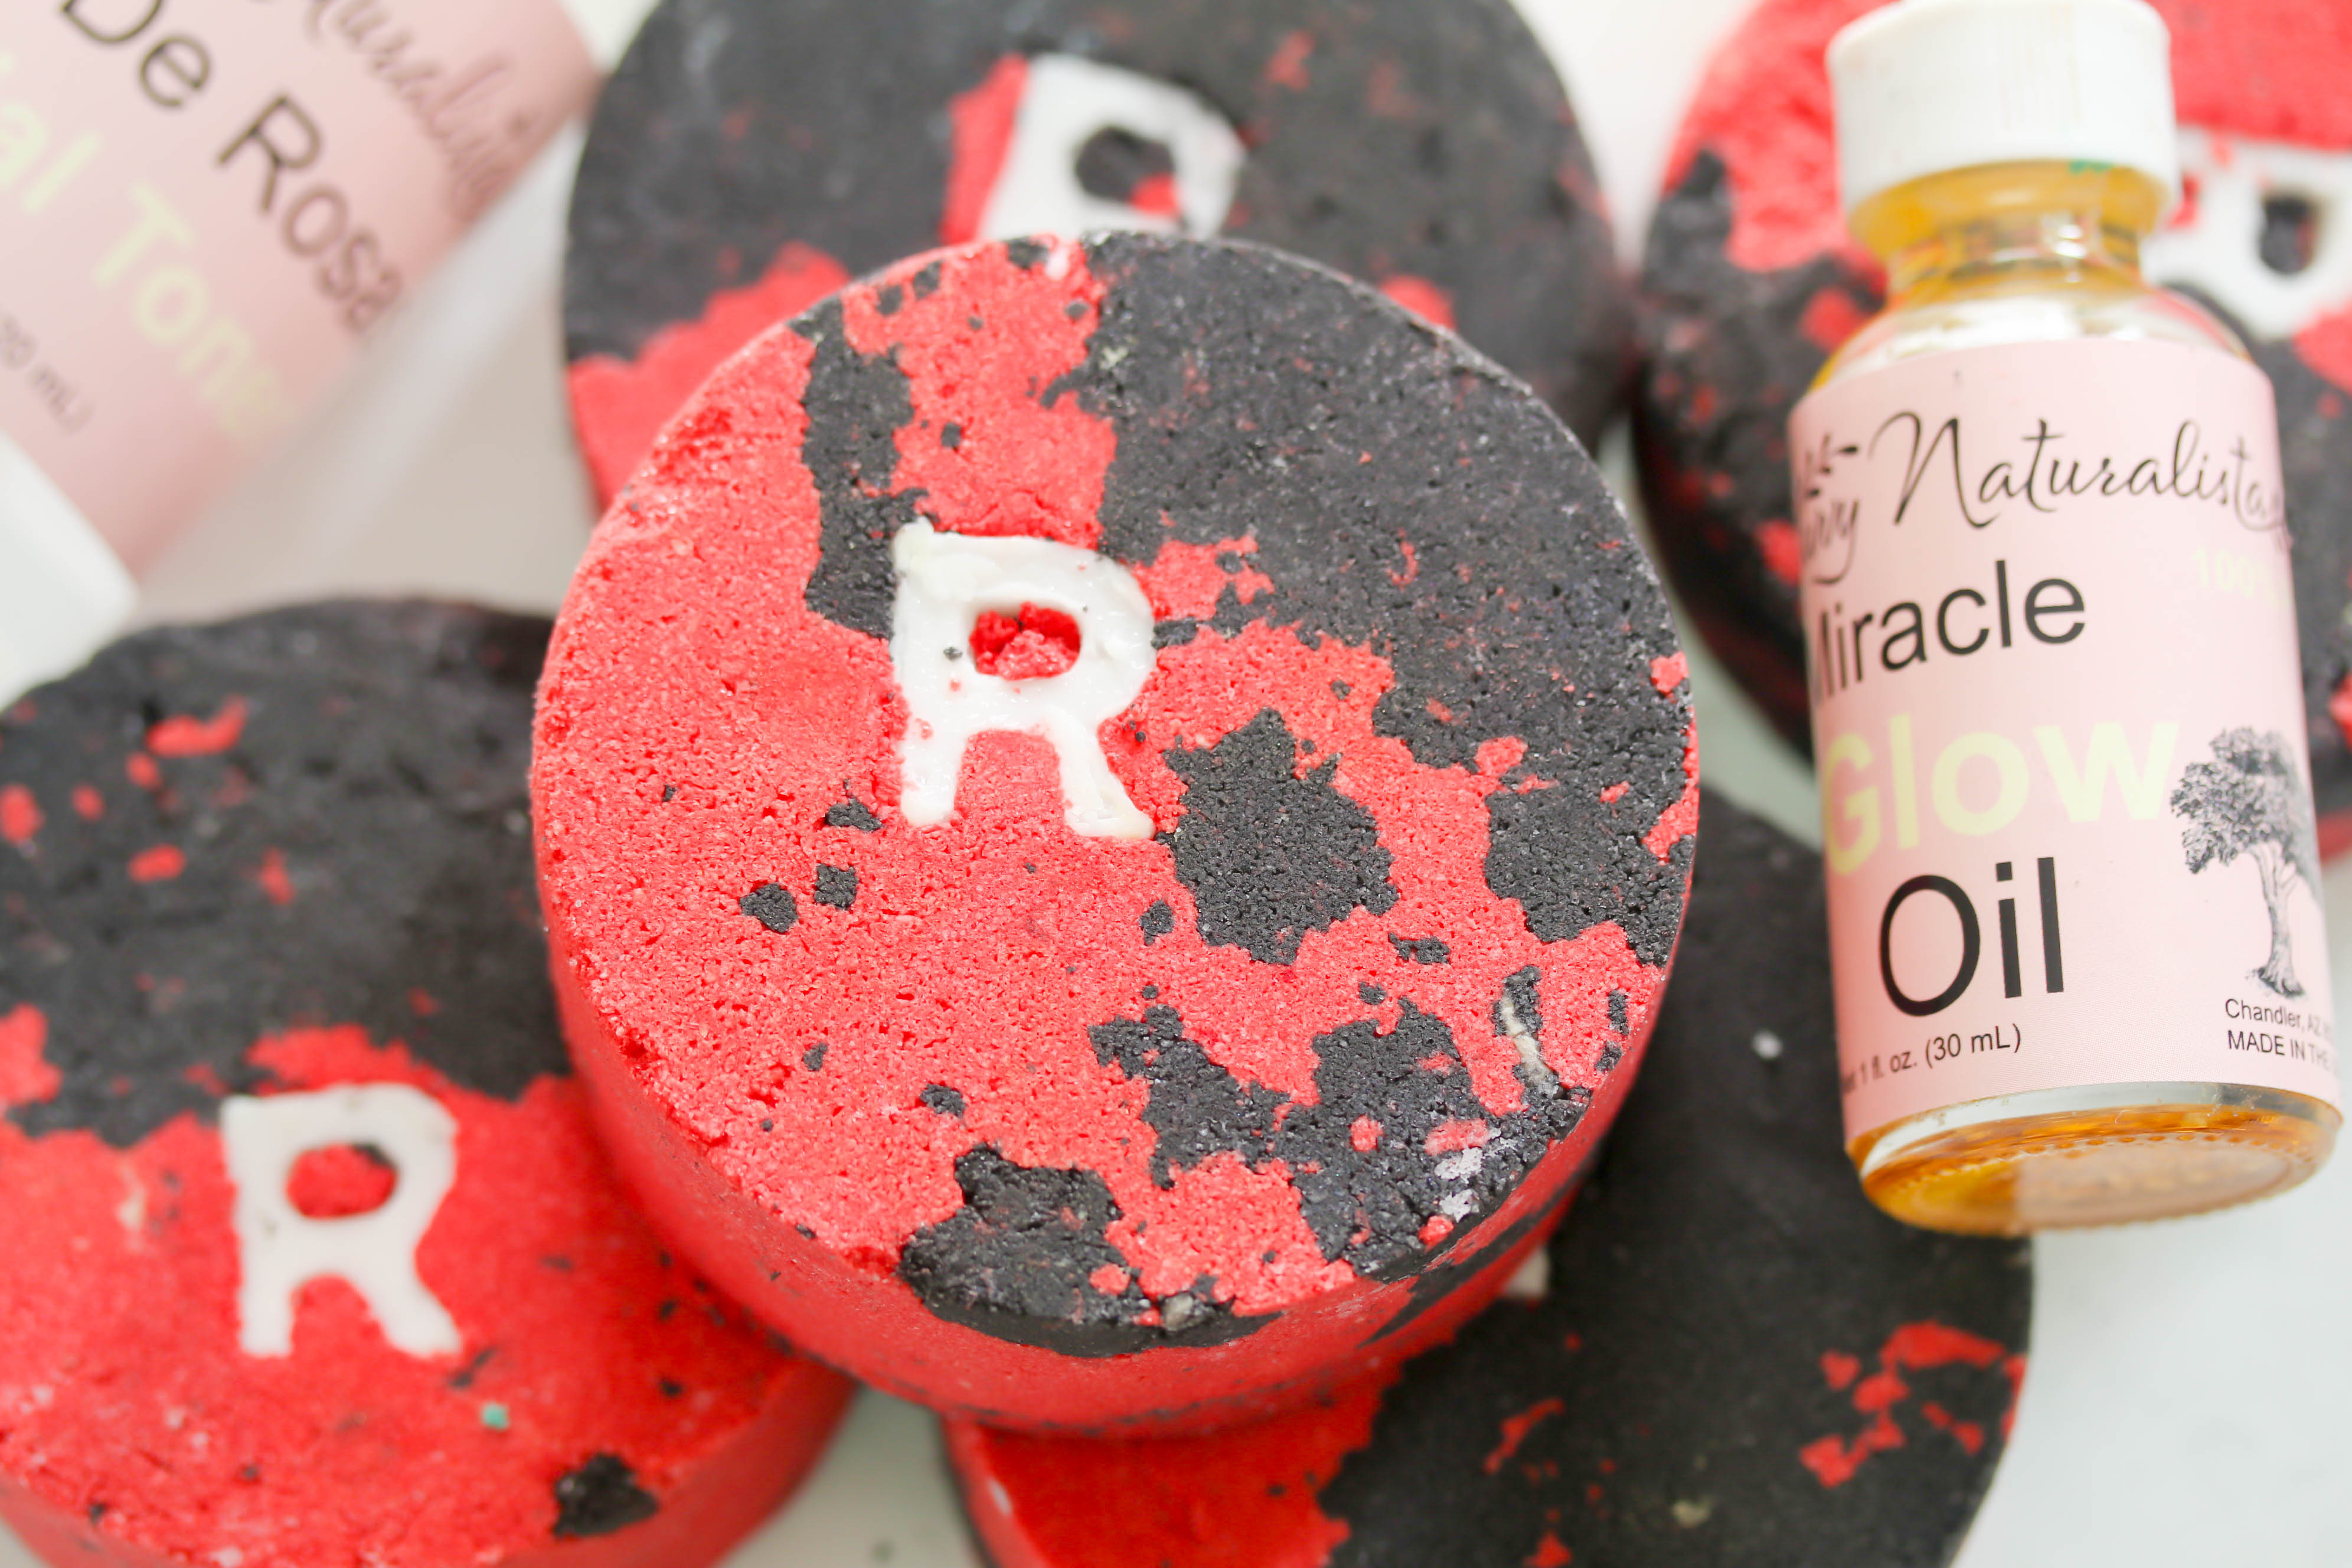 Roblox Time Bomb Inspired By The Oh So Popular Roblox Game These Bath Bombs Are The Perfect Gift For The Roblox Fan You Know Best Bath Time Treat That S Shundara Approved Savvy Naturalista